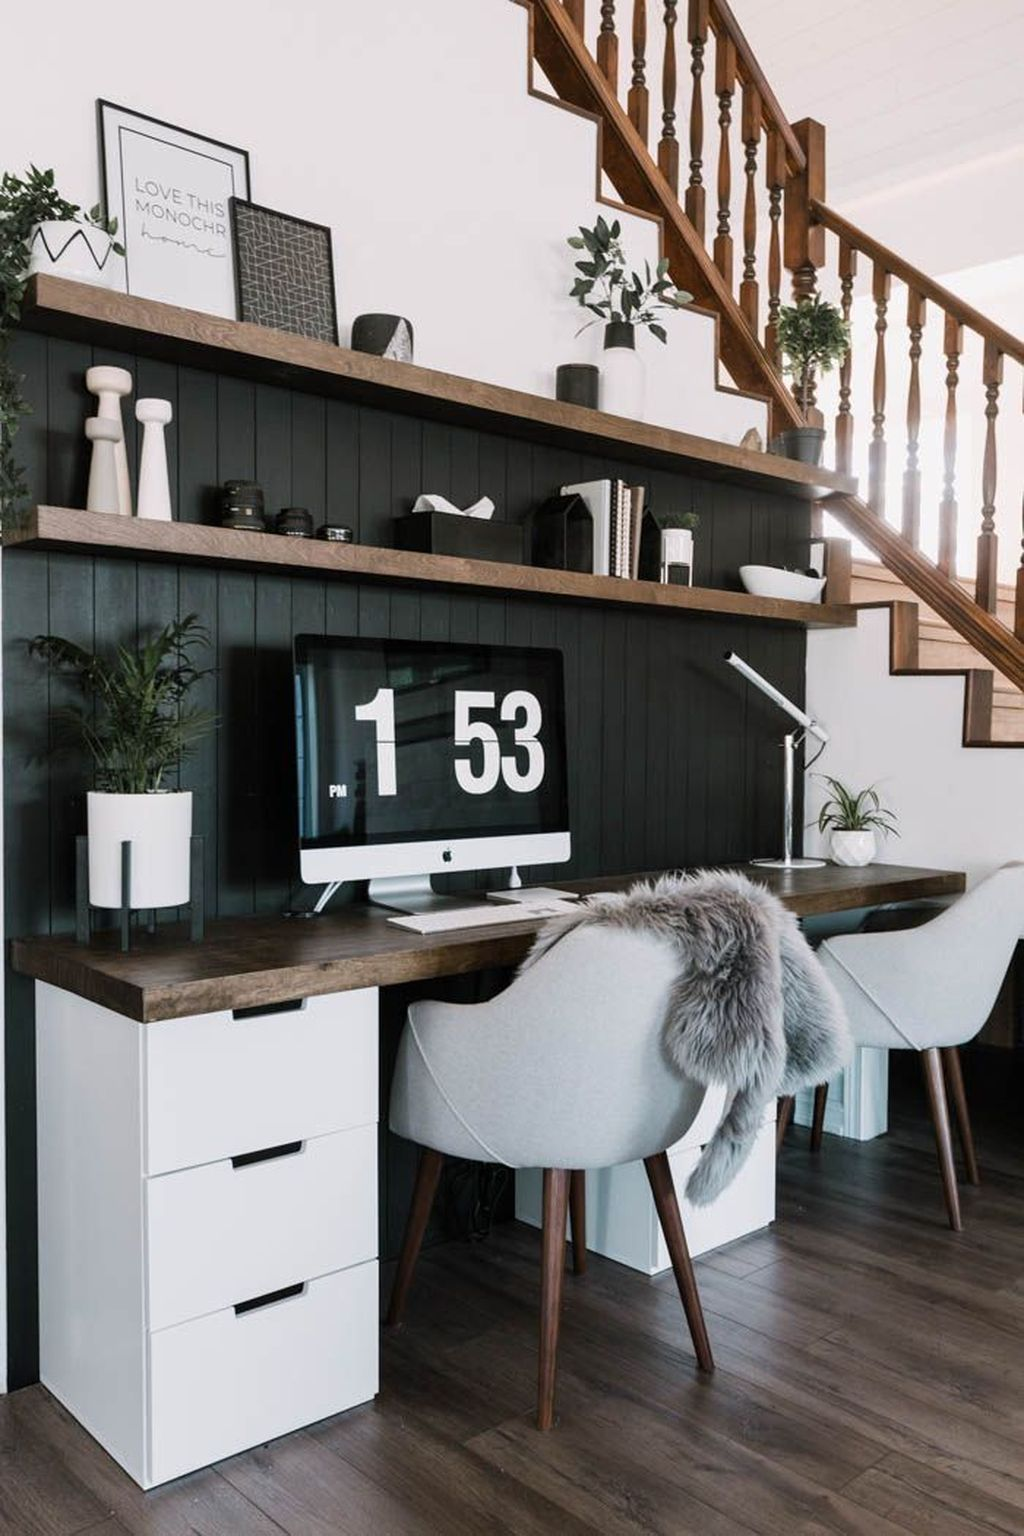 30 Affordable Diy Home Office Decor Ideas With Tutorials Home Decor Home Home Office Design